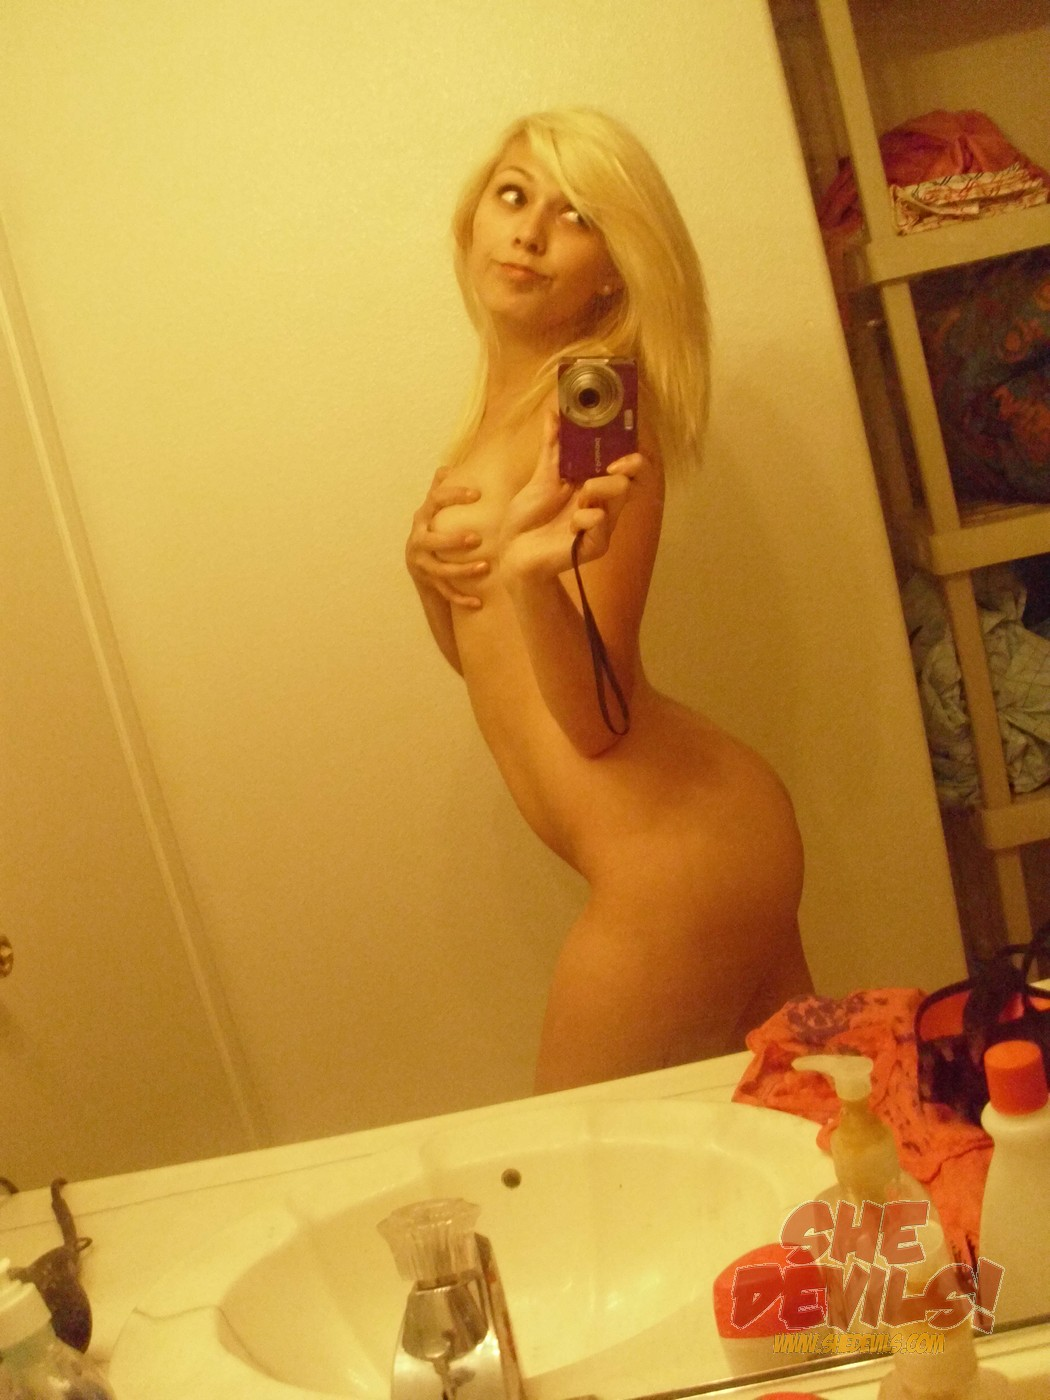 naked teen blonde girl selfie